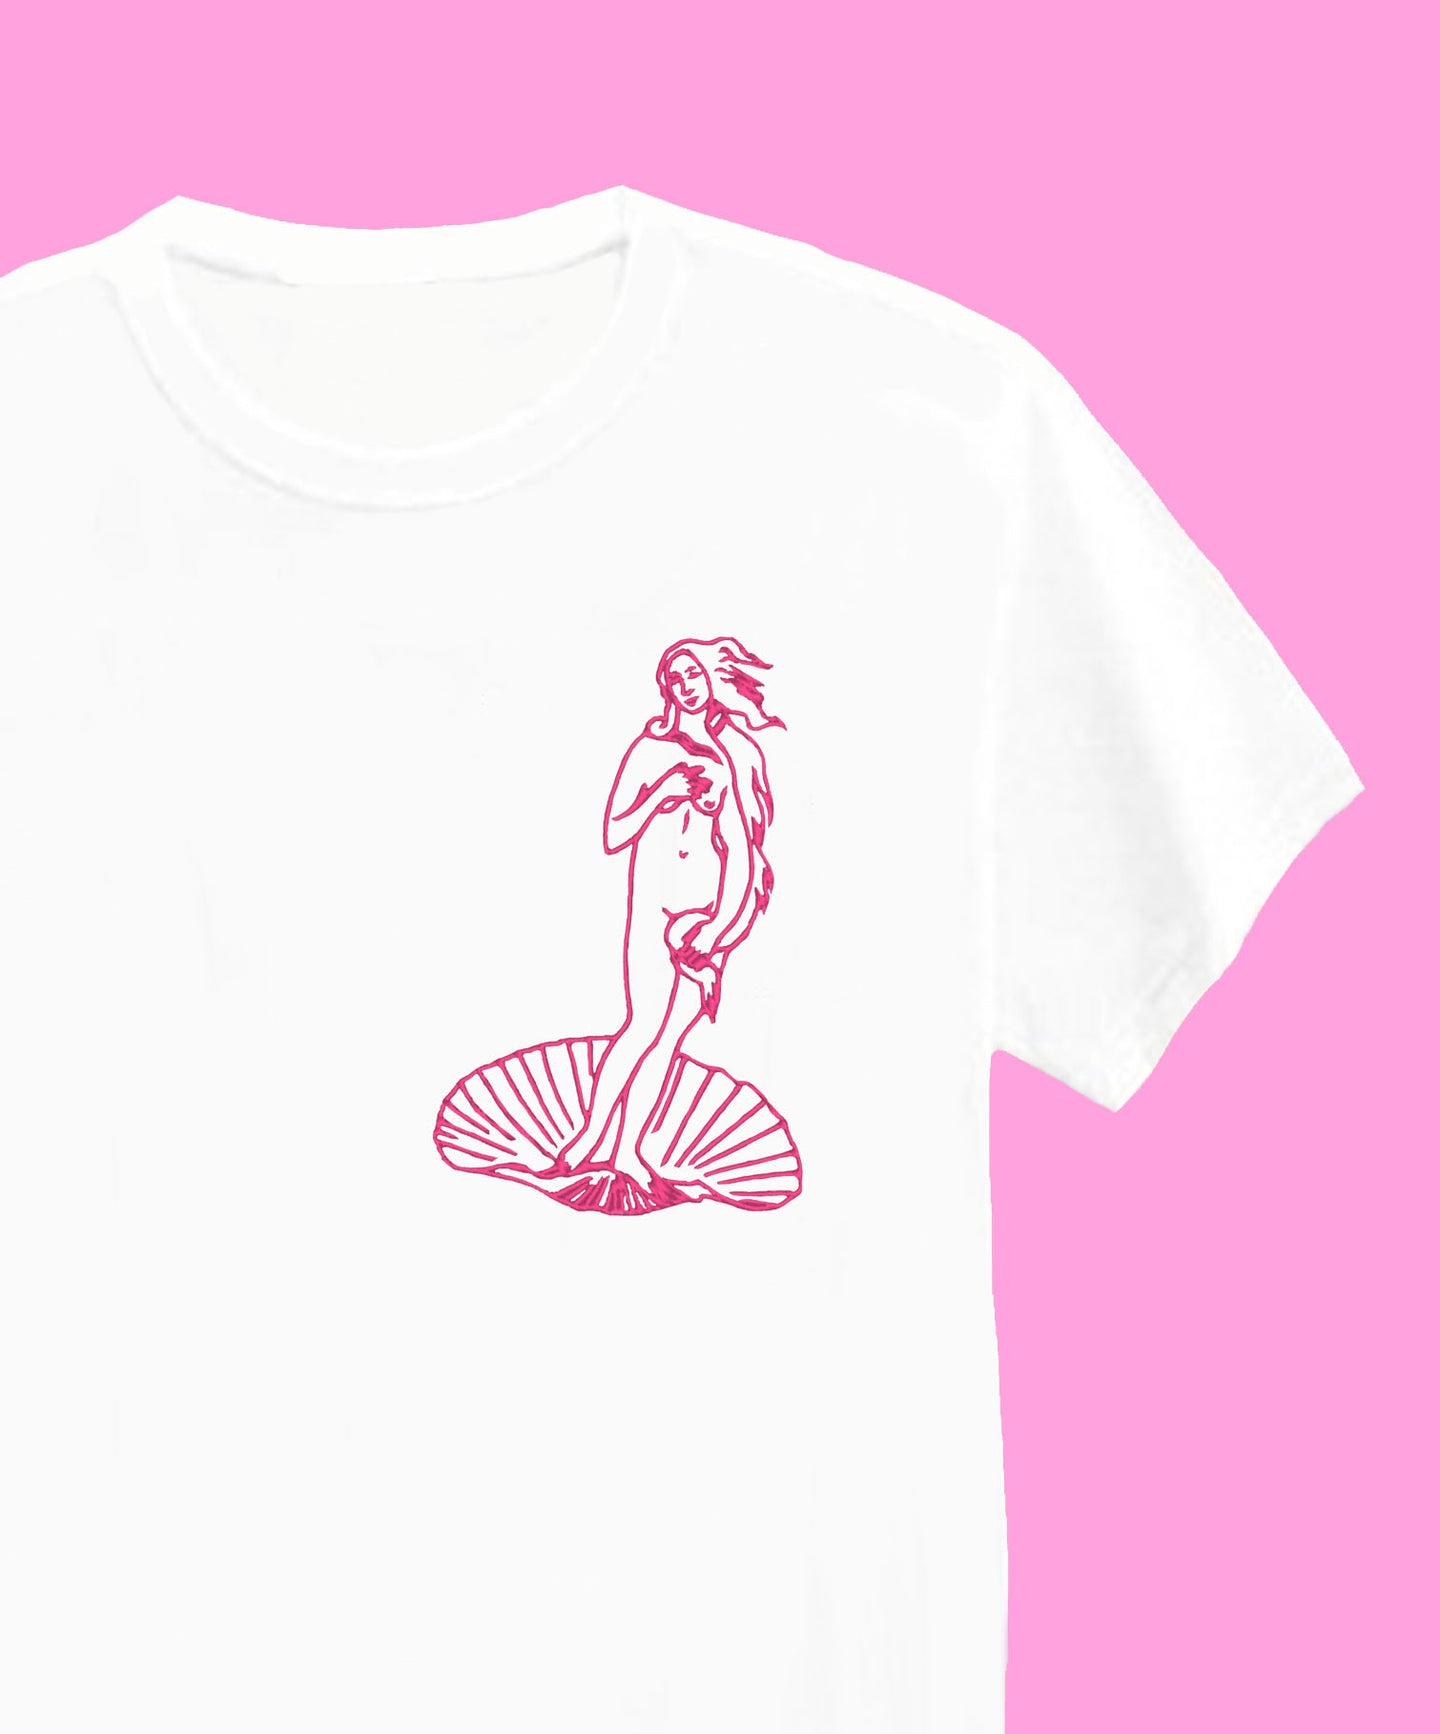 Birth Of Venus - Unisex Embroidered Tees